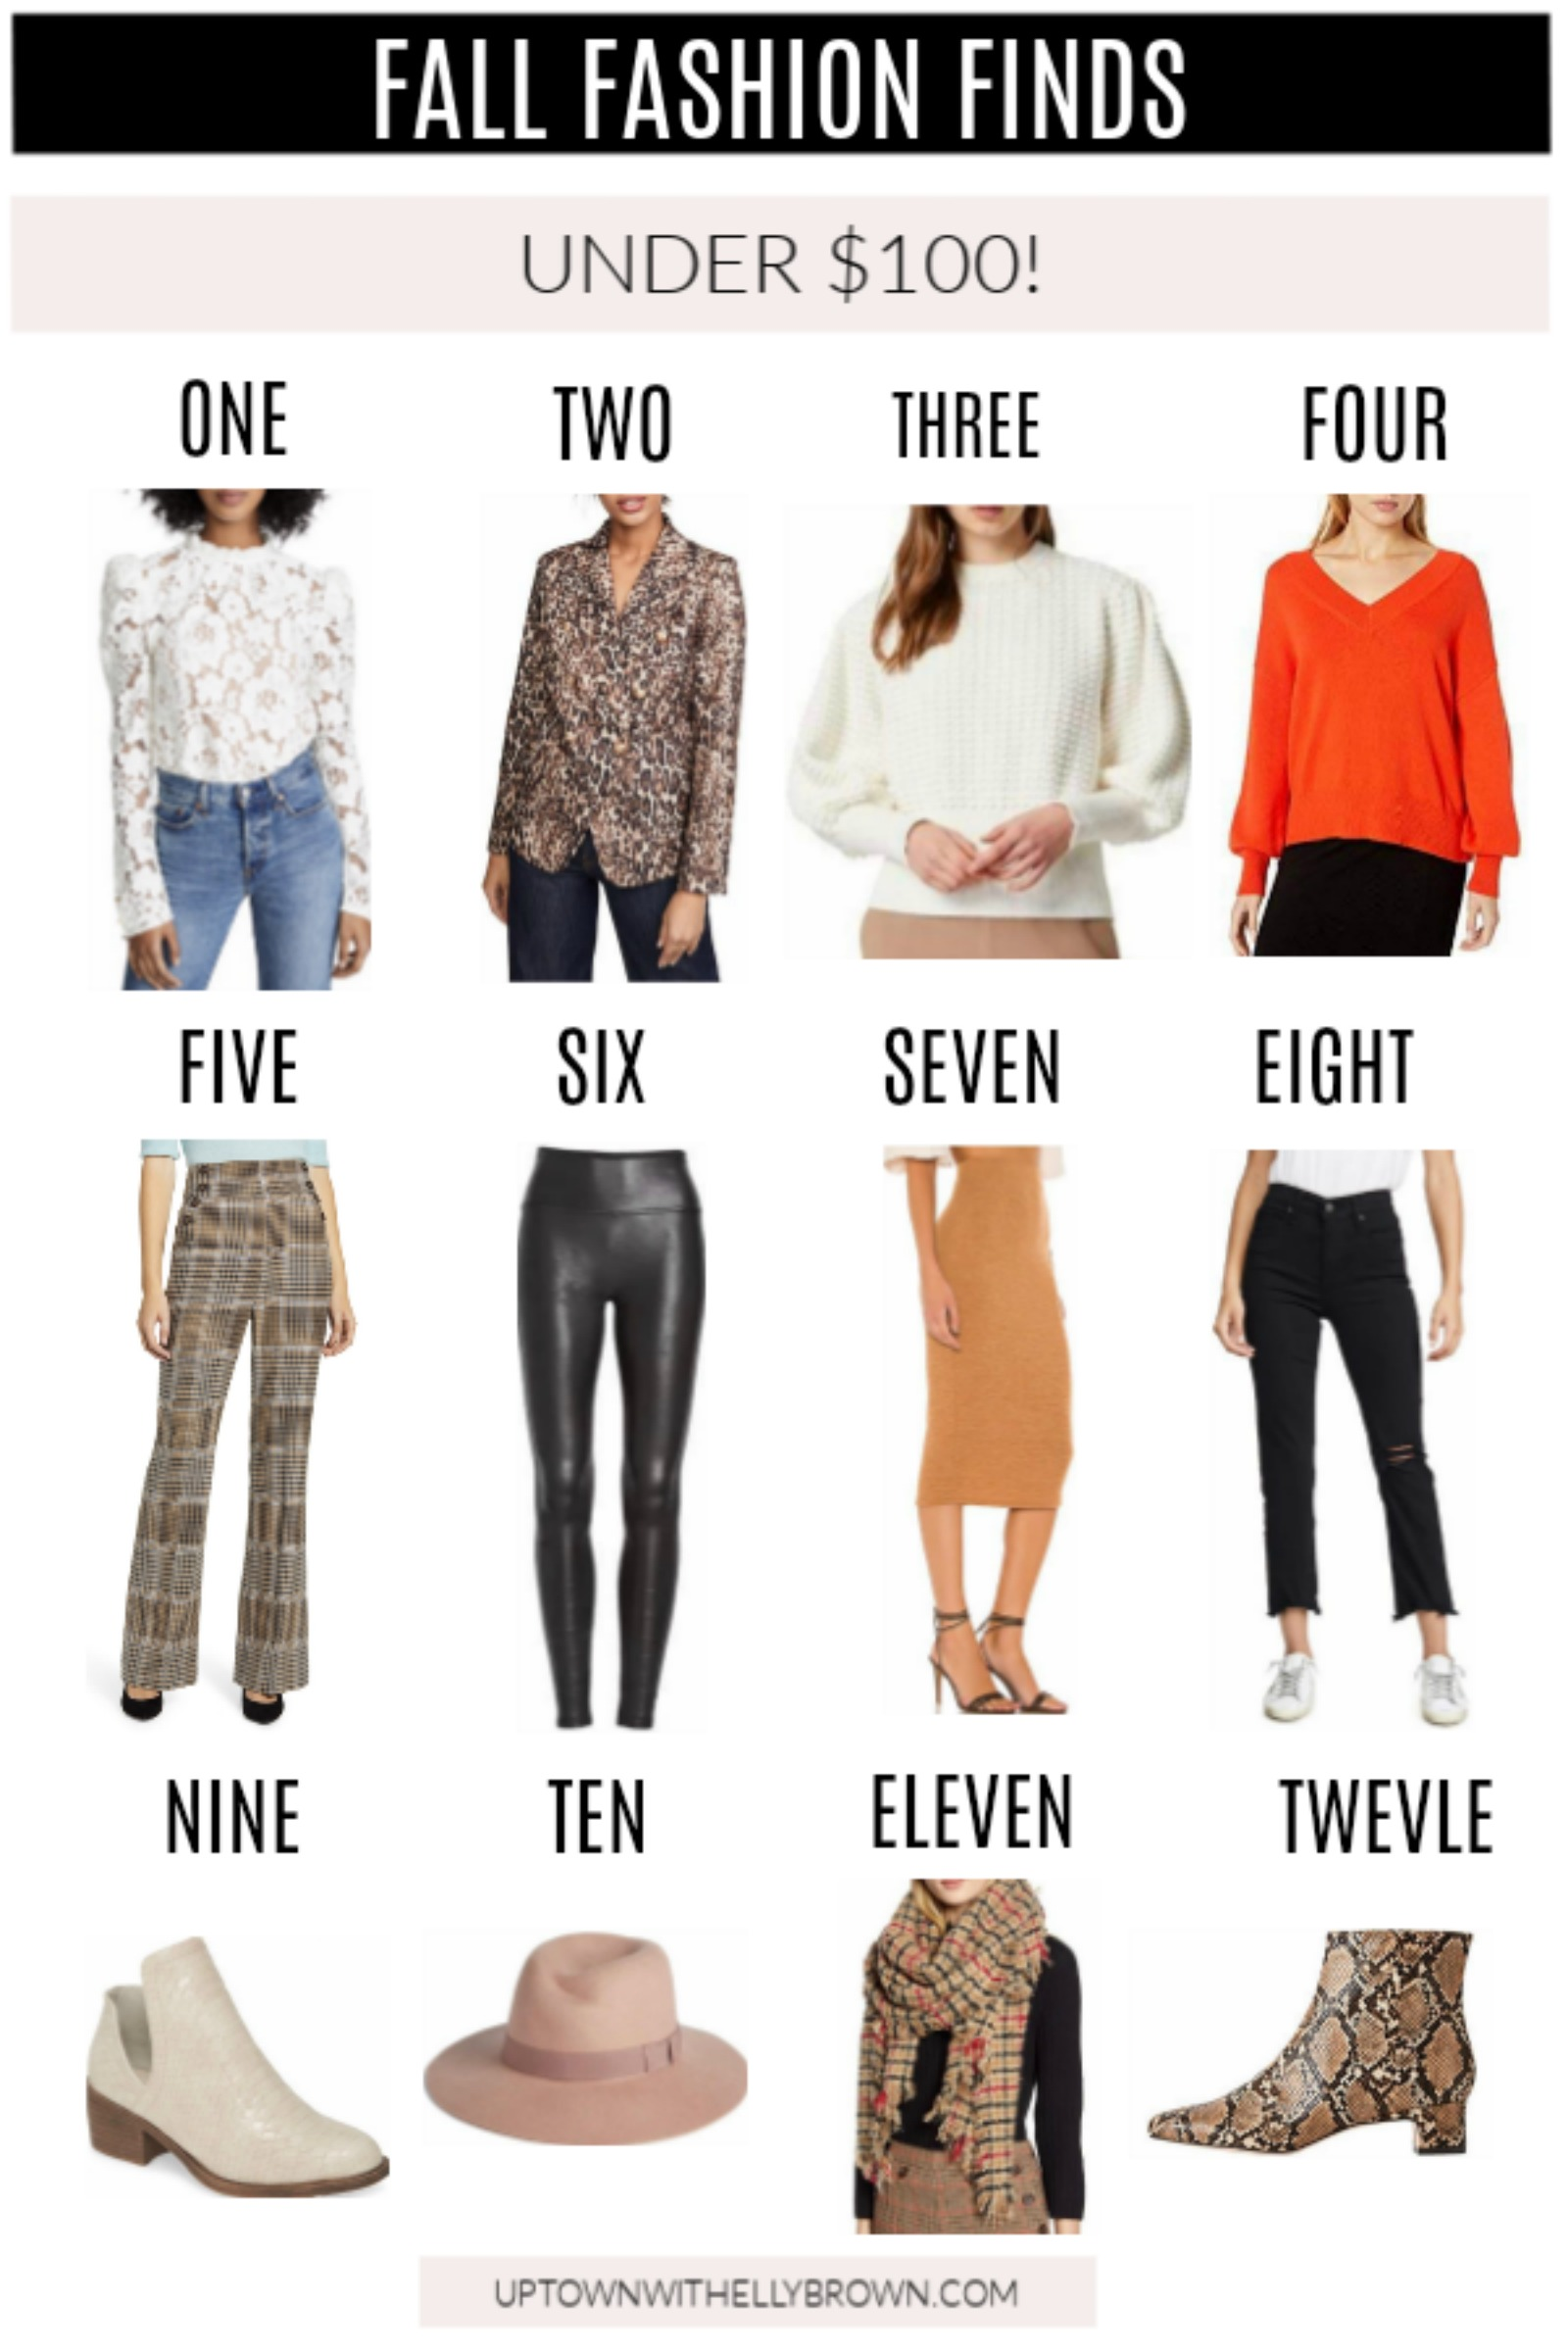 Looking for on trend clothing for fall? Houston fashion blogger Elly Brown shares over 15 Fall Fashion Items Under $100 to buy this season!